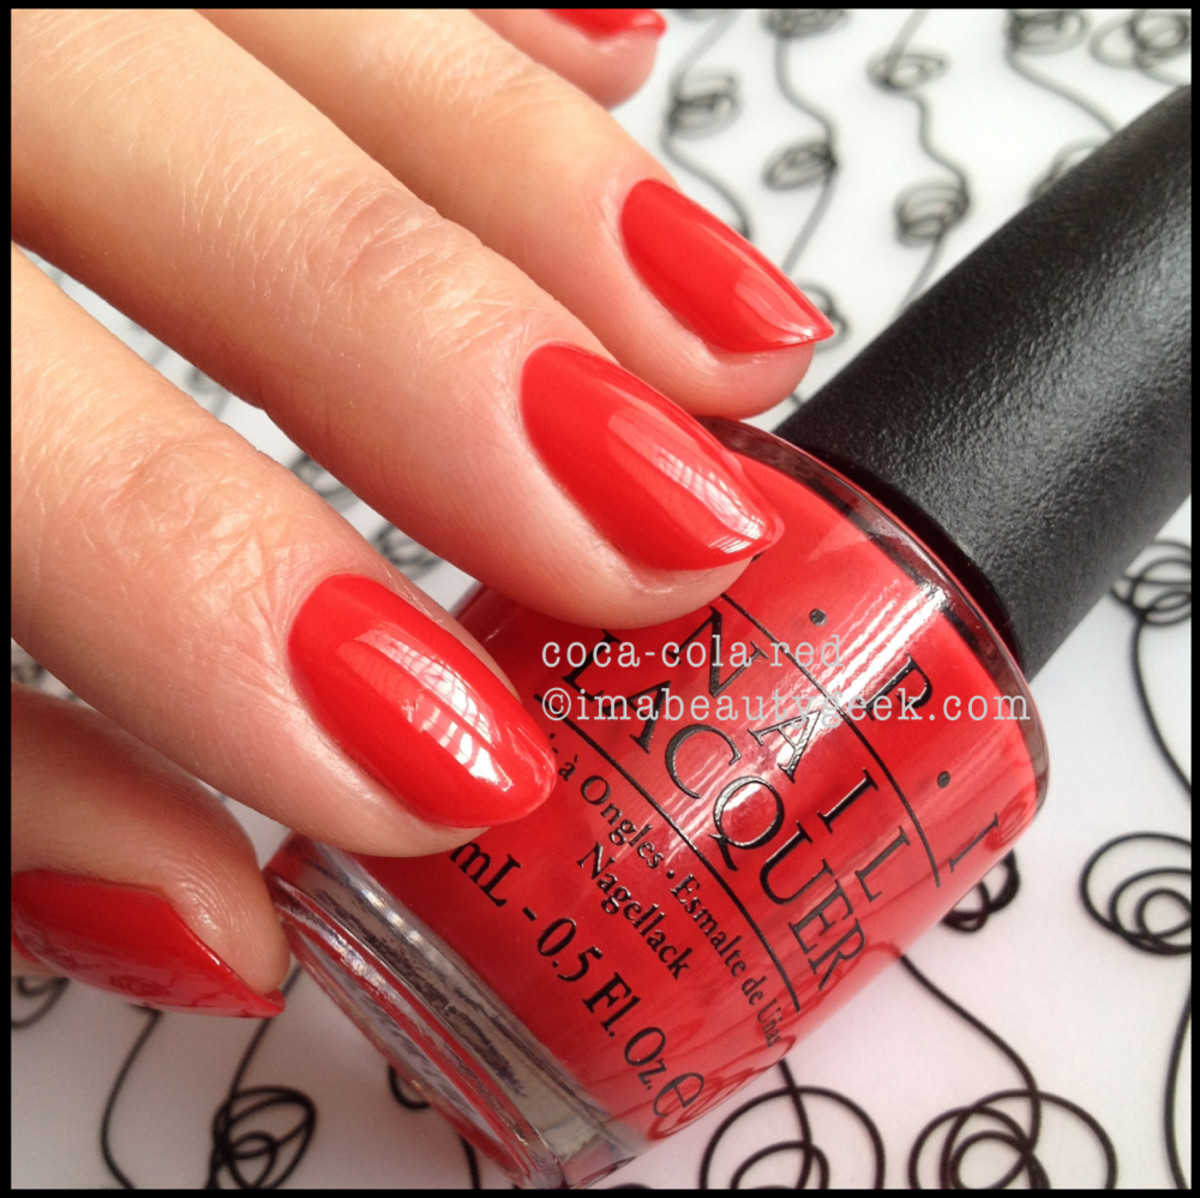 OPI Coca Cola Red OPI Coca Cola 2014